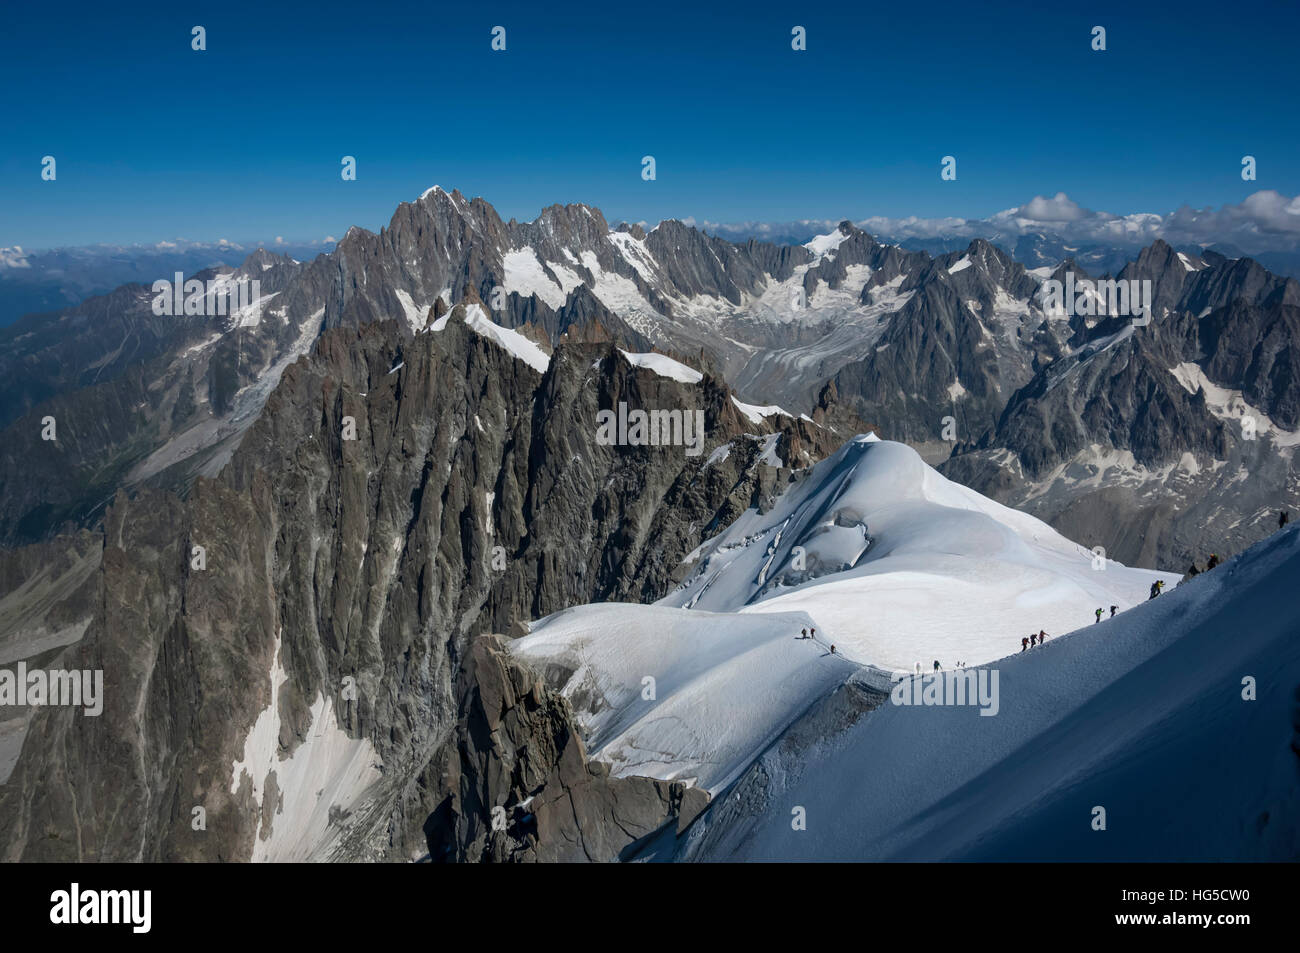 Climbers on a snowfield approaching the Aiguile du Midi, 3842m, Graian Alps, Chamonix, Haute Savoie, French Alps, - Stock Image